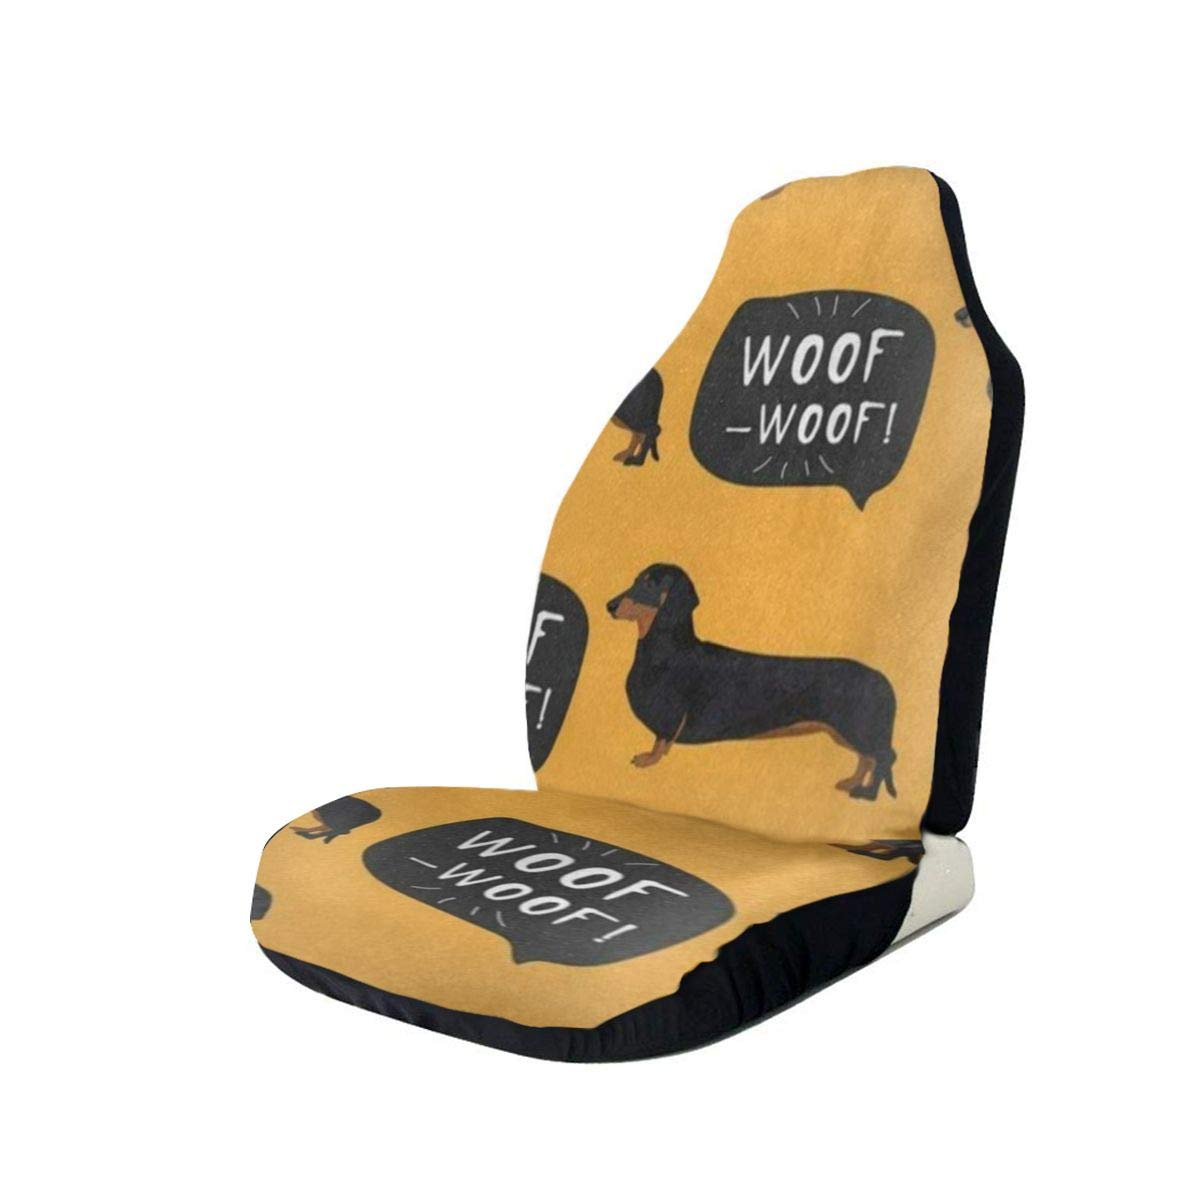 Car Seat Cover Cute Dachshund Dog Car Seat Protector,Waterproof Anti-Slip Durable Soft Car Seat Covers for Universal Size Fits for Cars,Trucks & Suvs